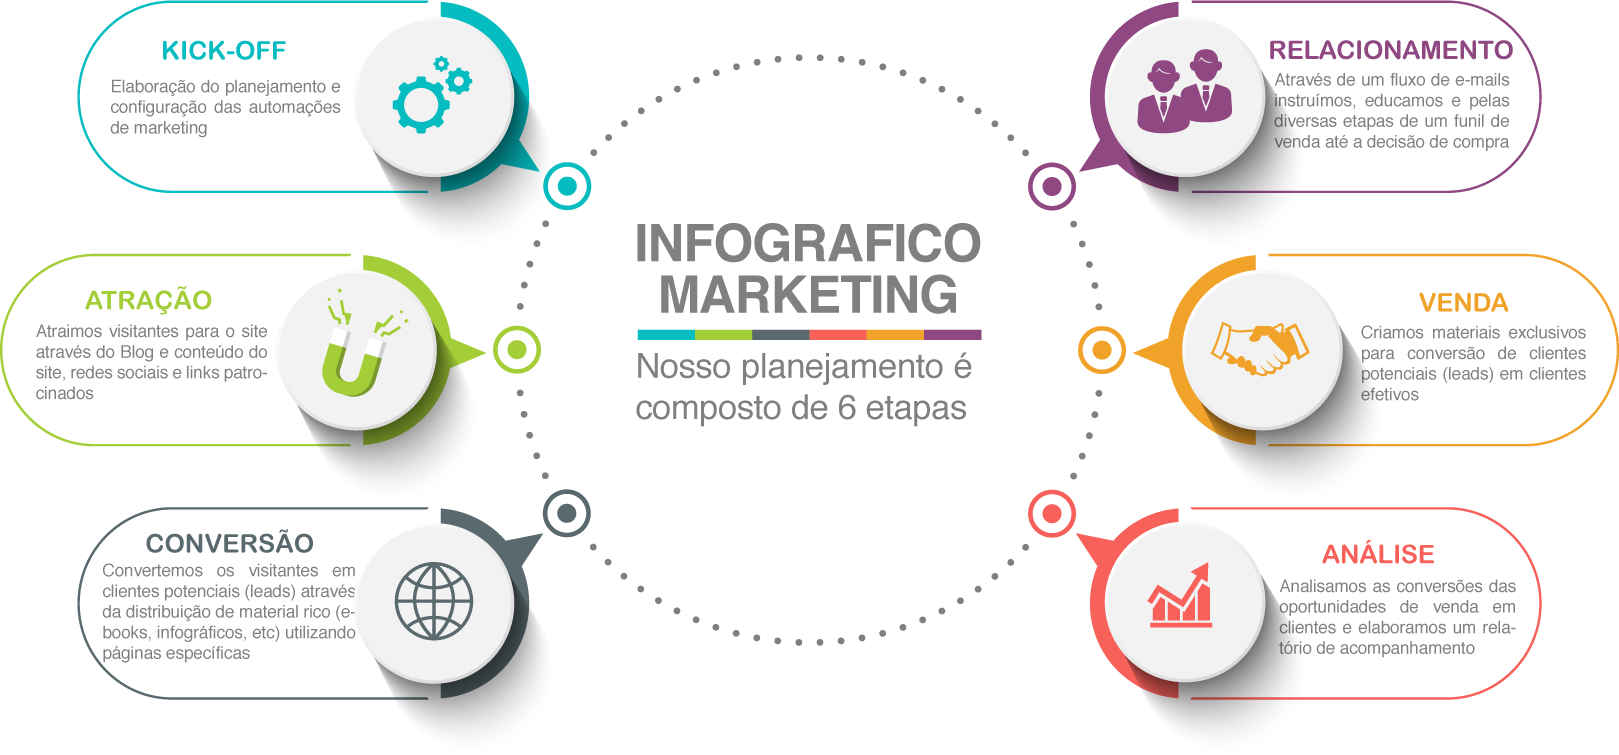 Dobra 7 Digital - Projeto de Marketing